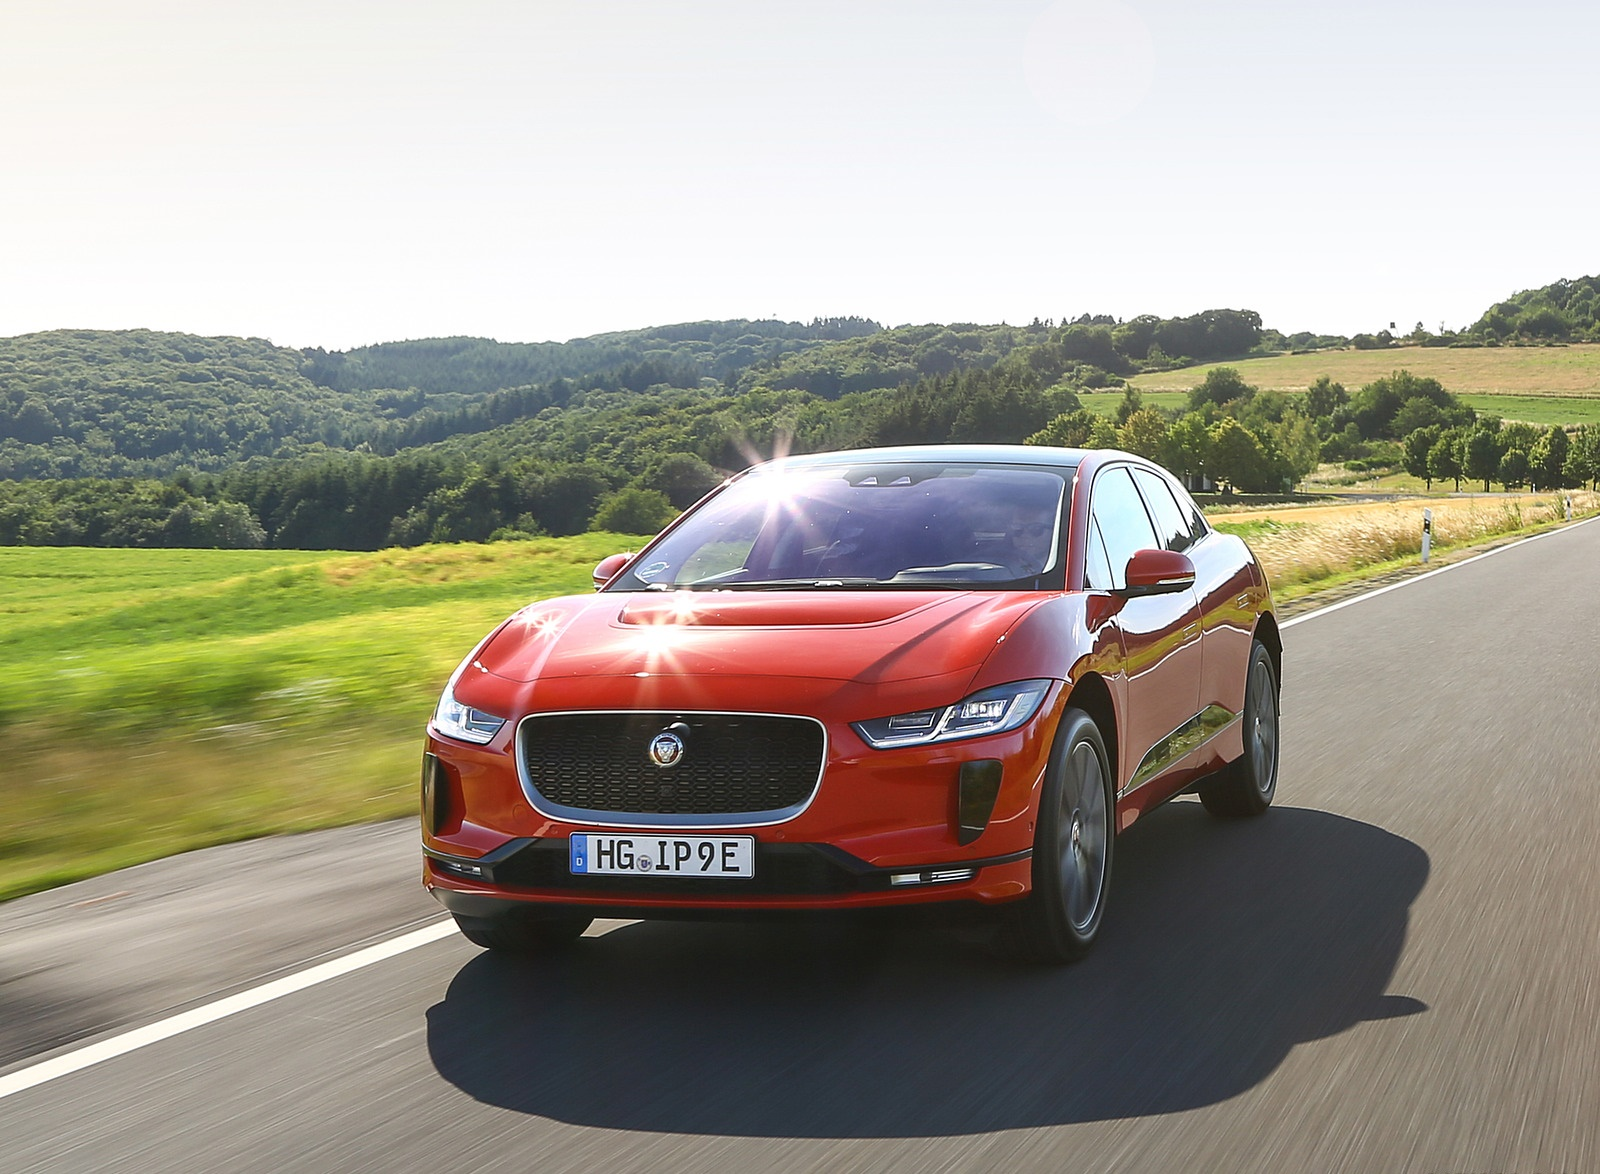 2019 Jaguar I-PACE EV400 AWD HSE First Edition (Color: Photon Red) Front Three-Quarter Wallpapers (3)